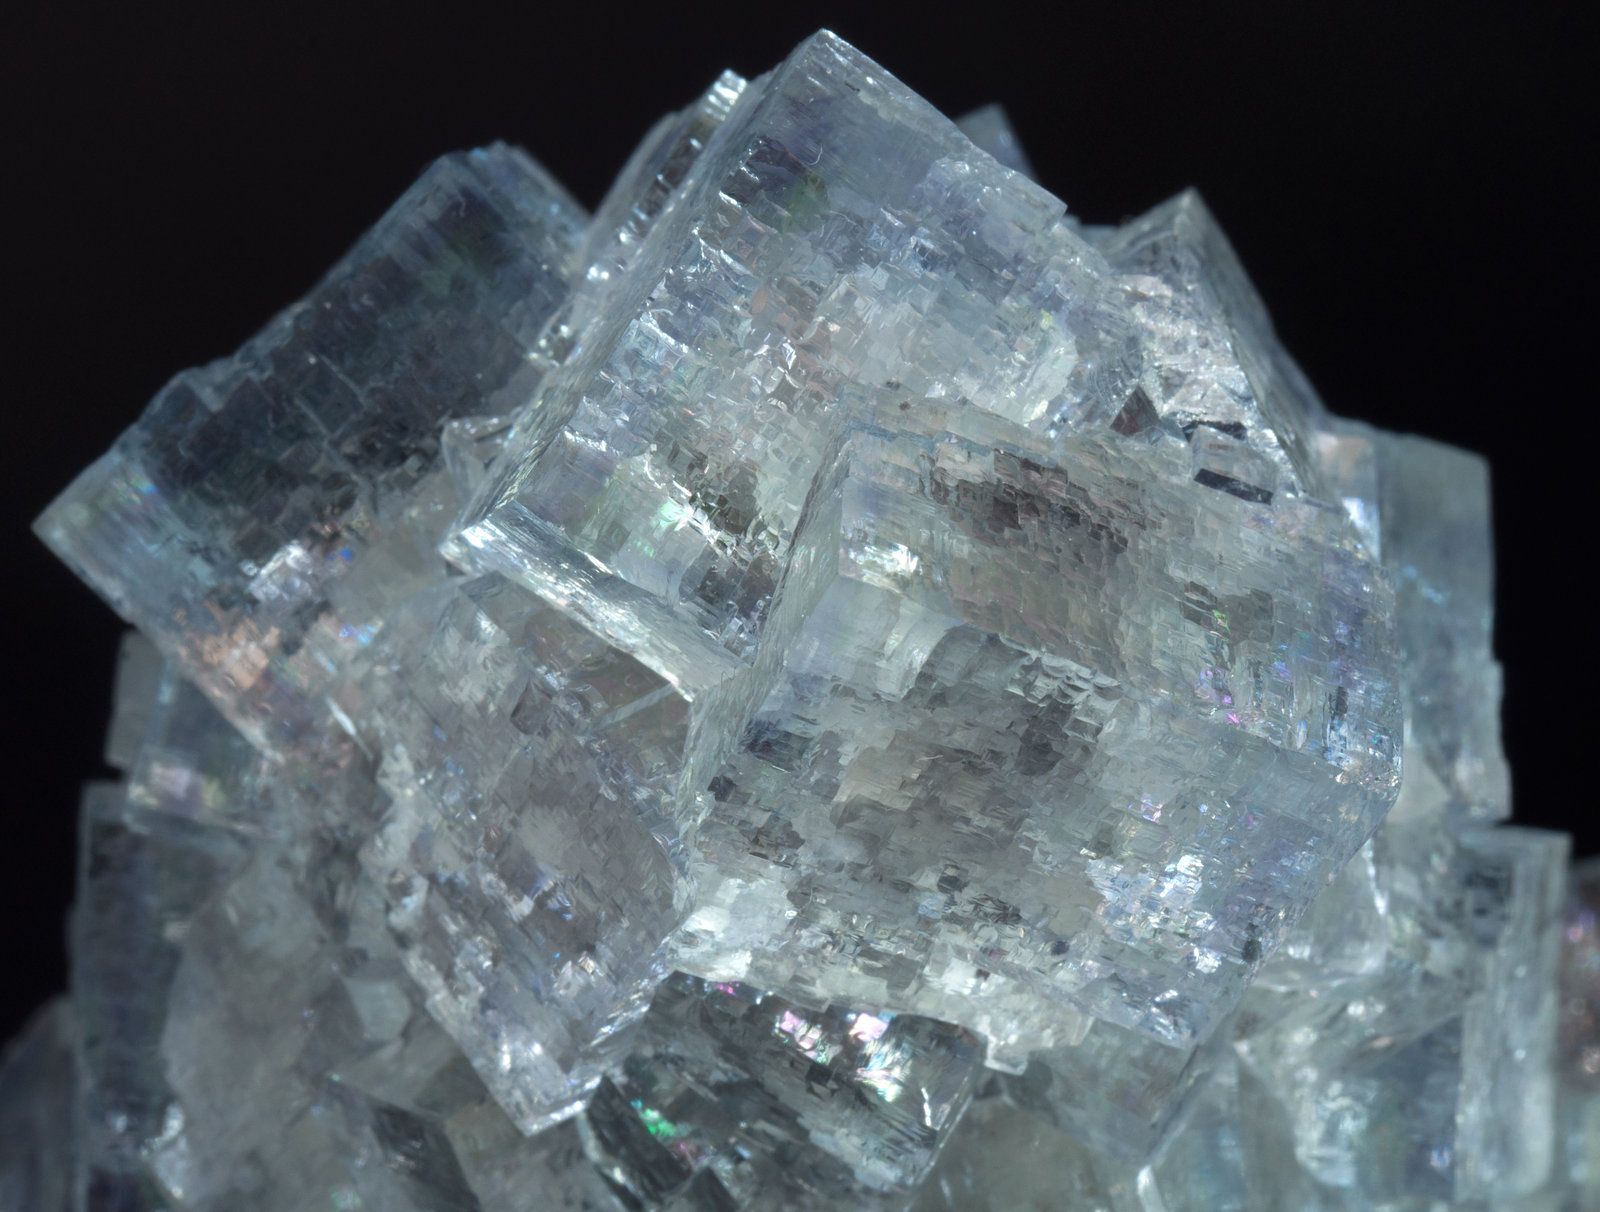 specimens/s_imagesAM1/Fluorite-NL94AM1d.jpg